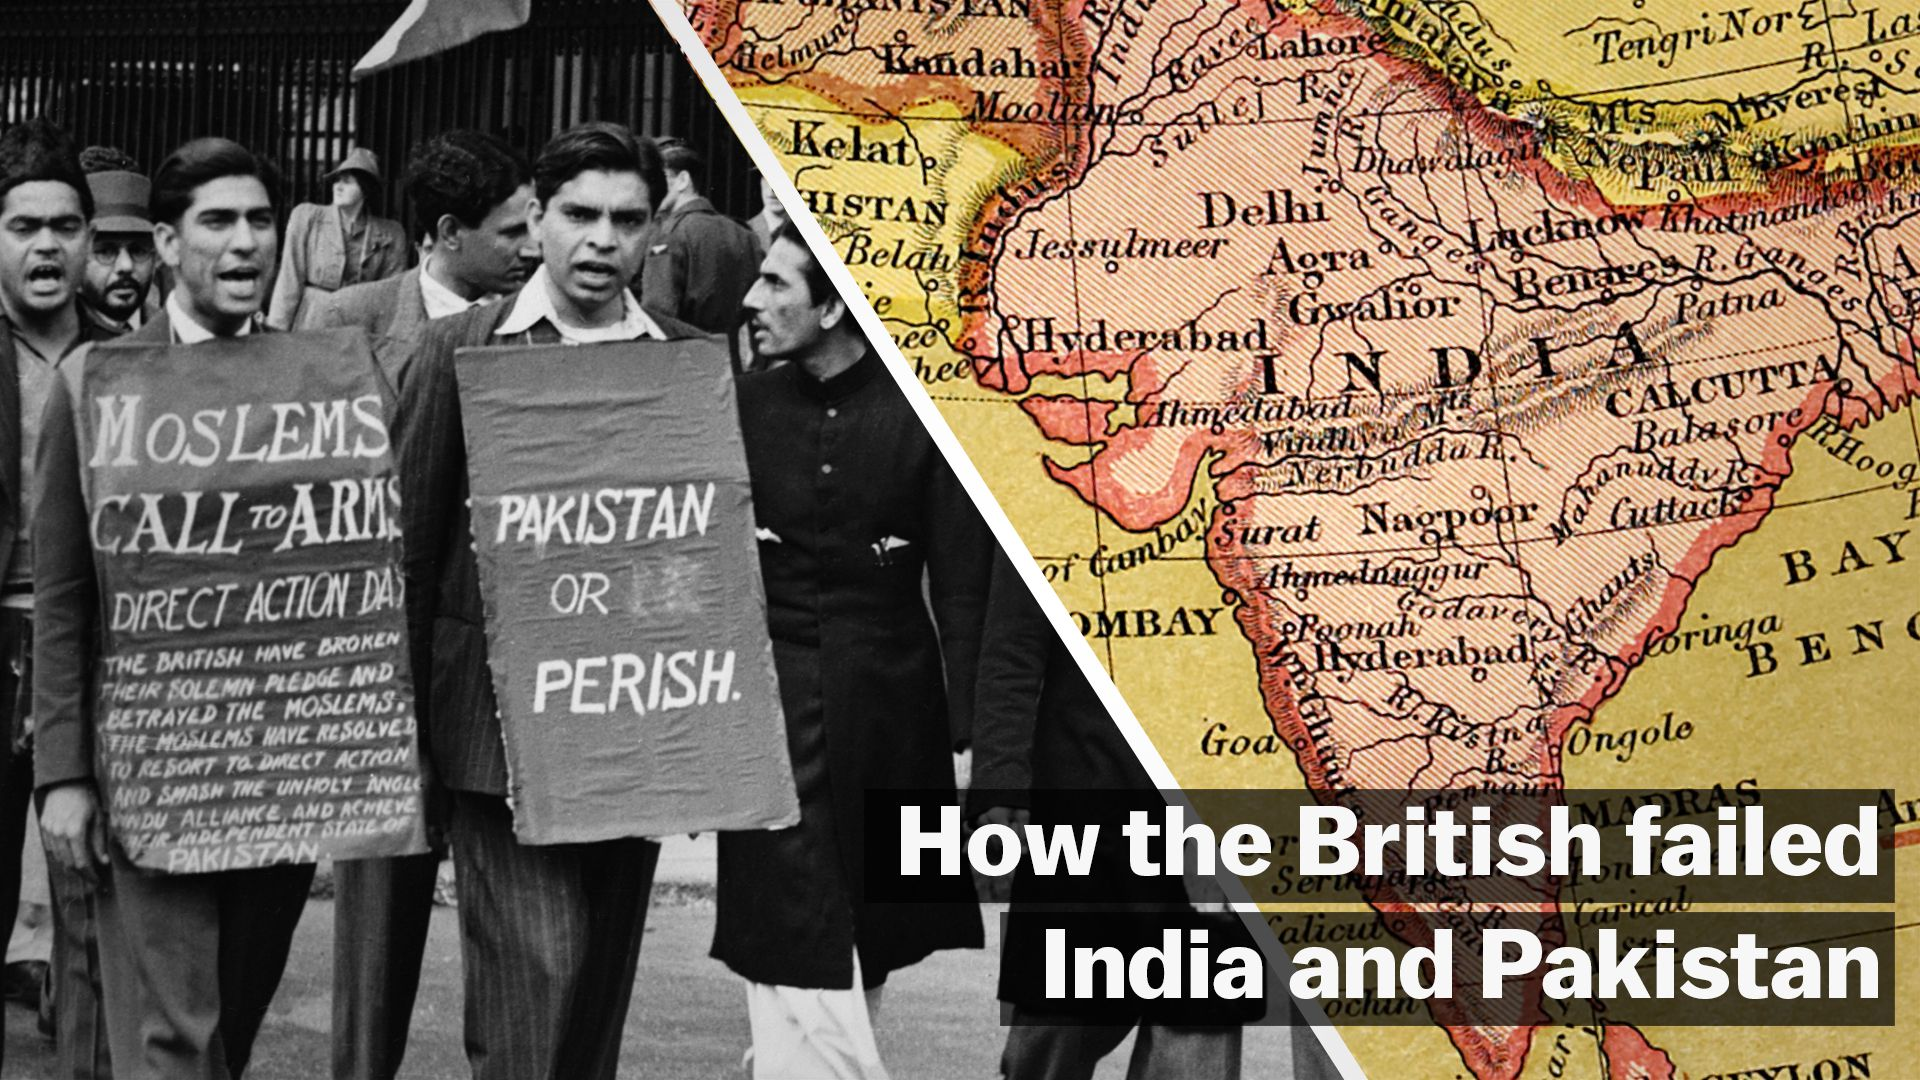 How the British failed India and Pakistan - Vox